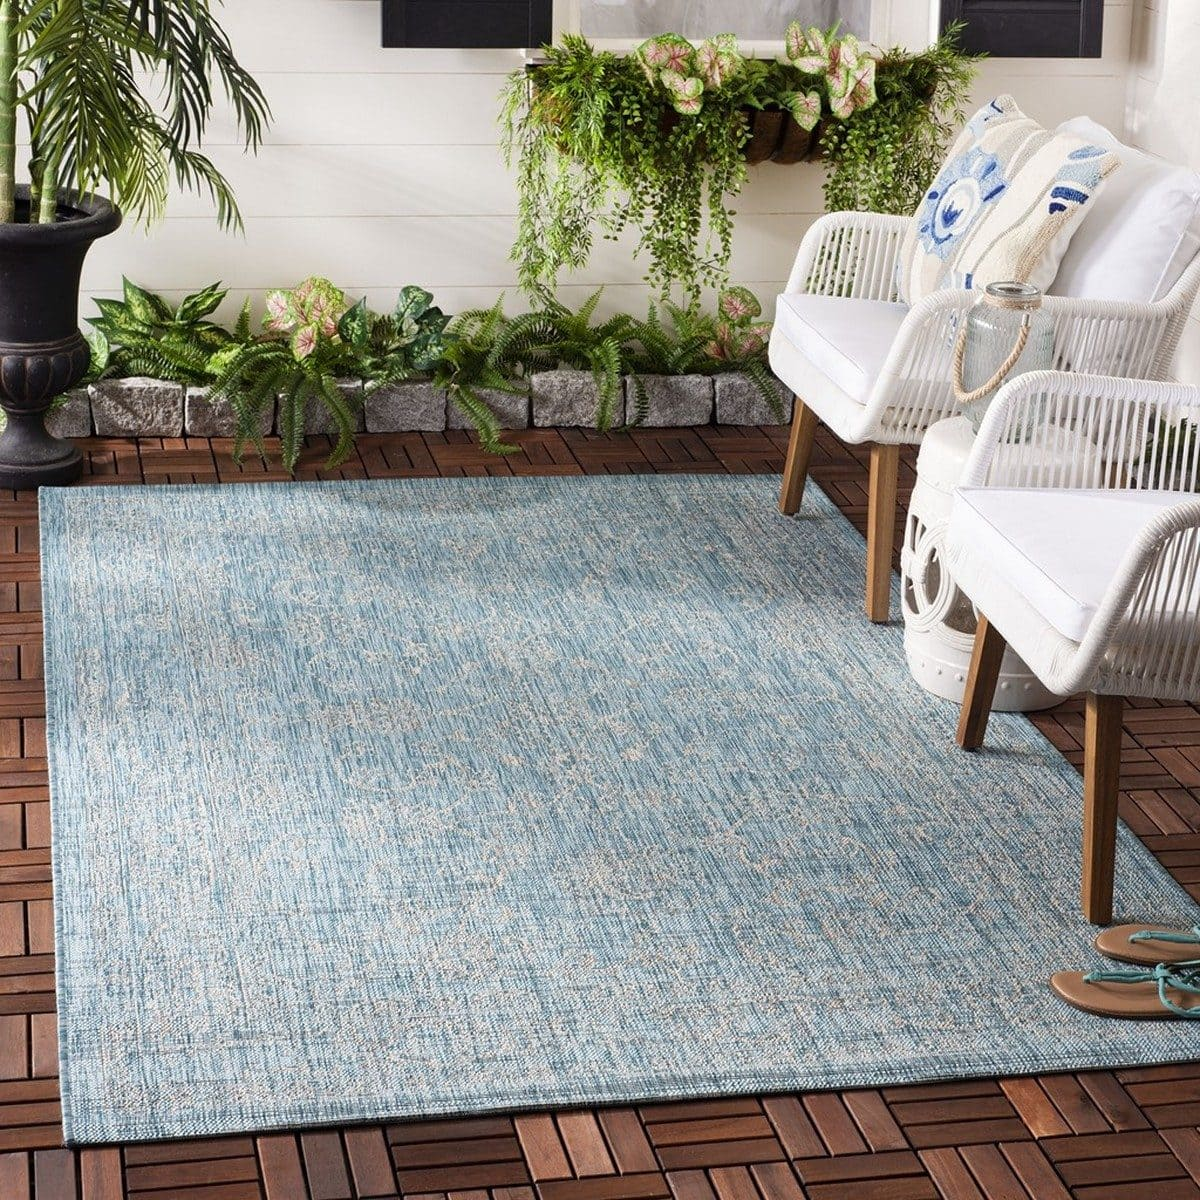 Giveaway: Win A Safavieh Rug Just In Time For The Holidays